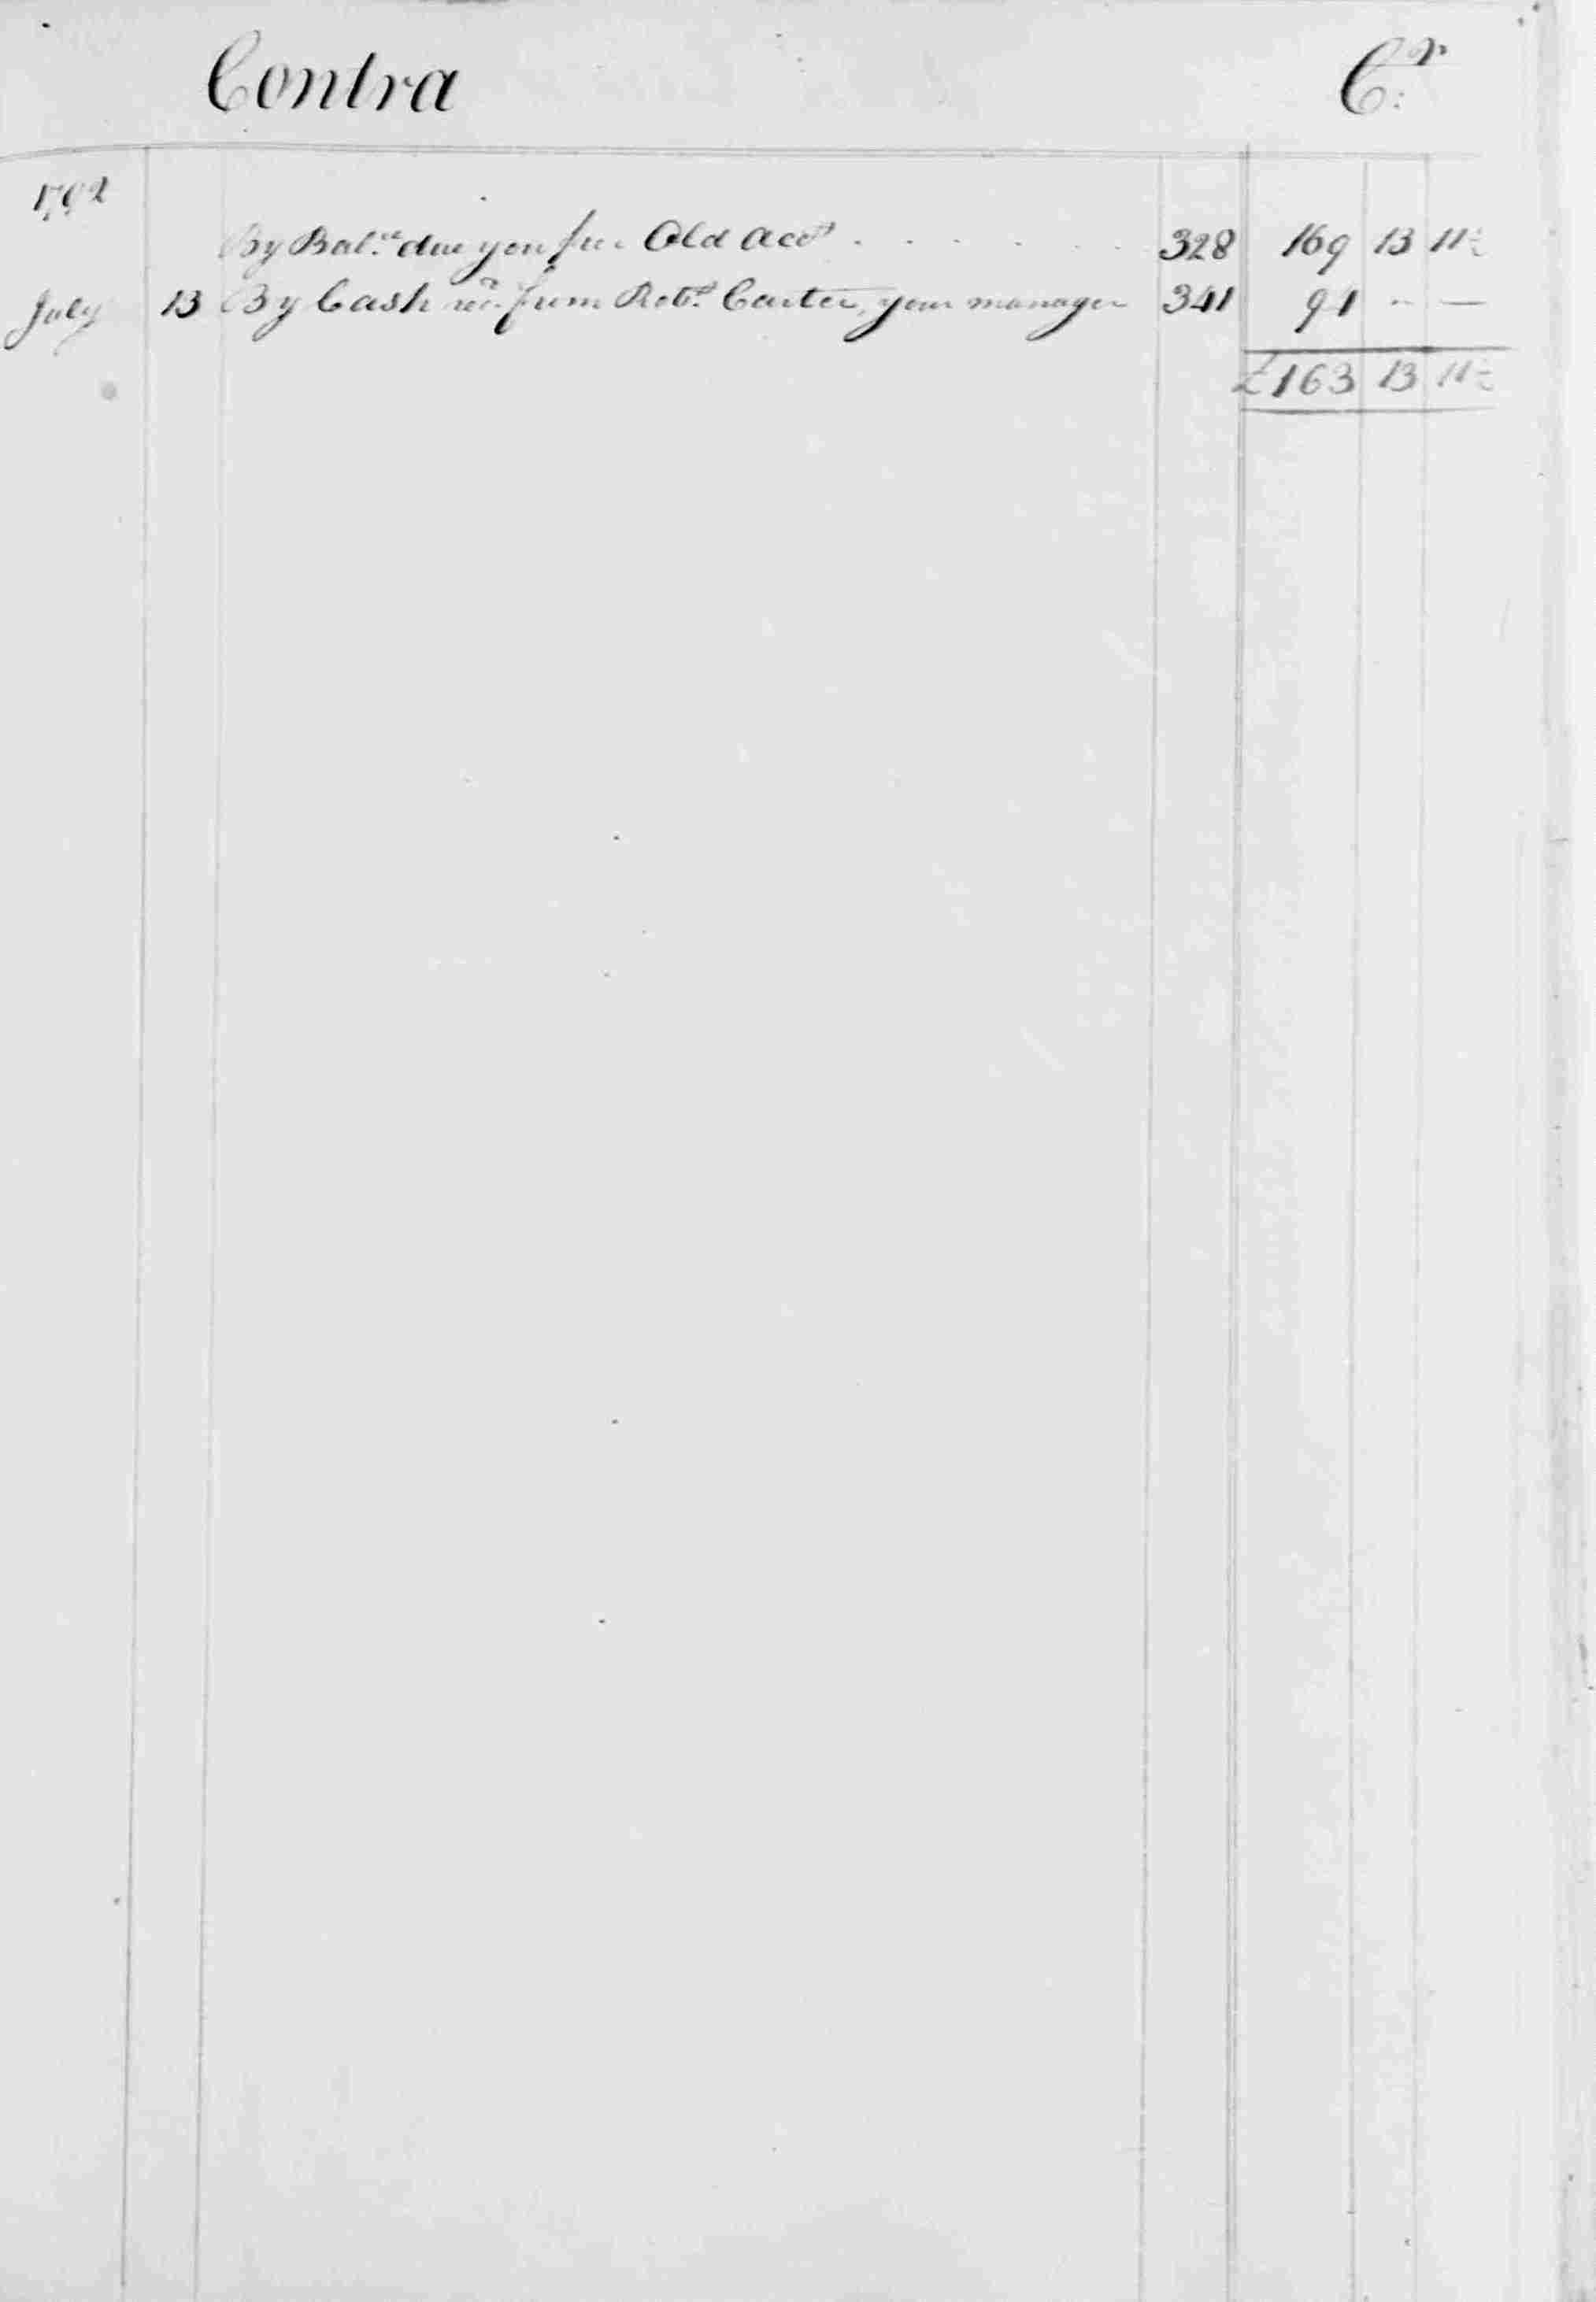 Ledger B, folio 362, right side